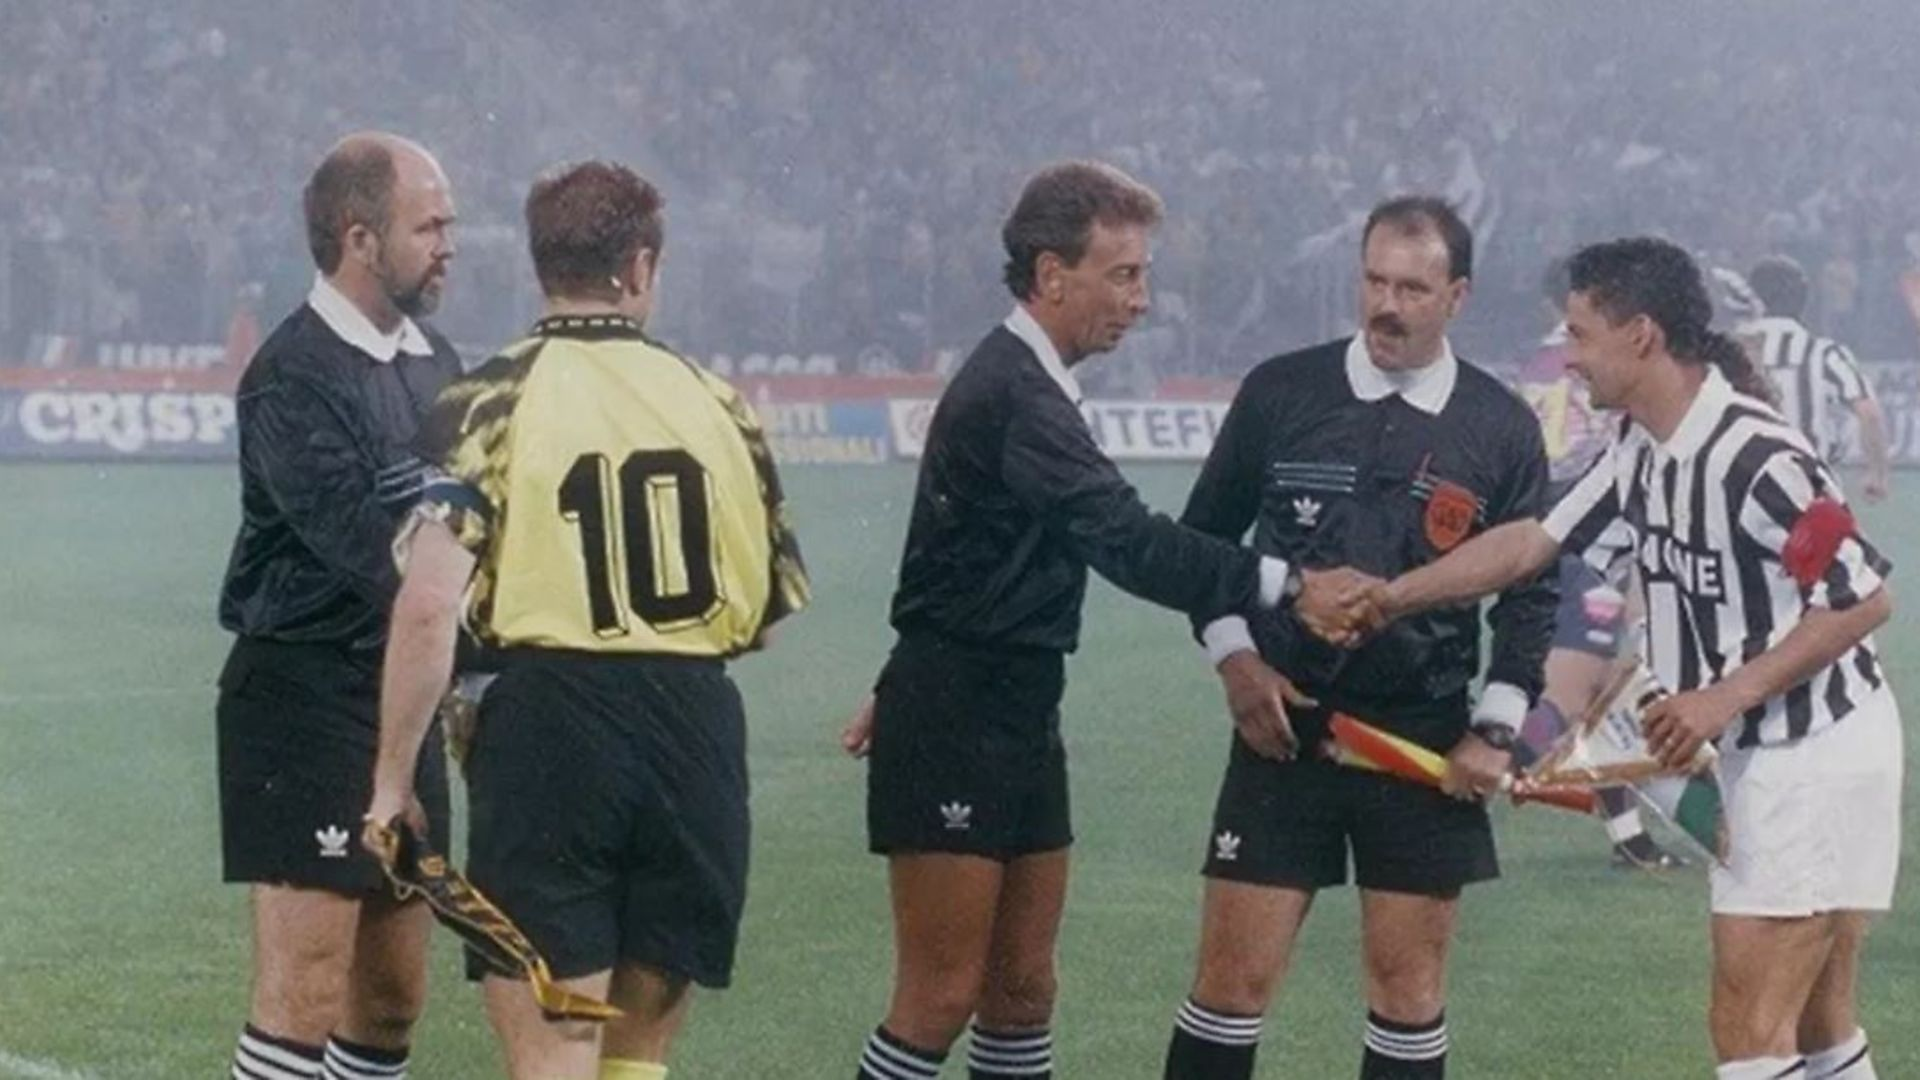 John Blankenstein shakes hands with Roberto Baggio at the start of the 1993 Uefa Cup final between Juventus and Borussia Dortmund - Credit: John Blankenstein Foundation